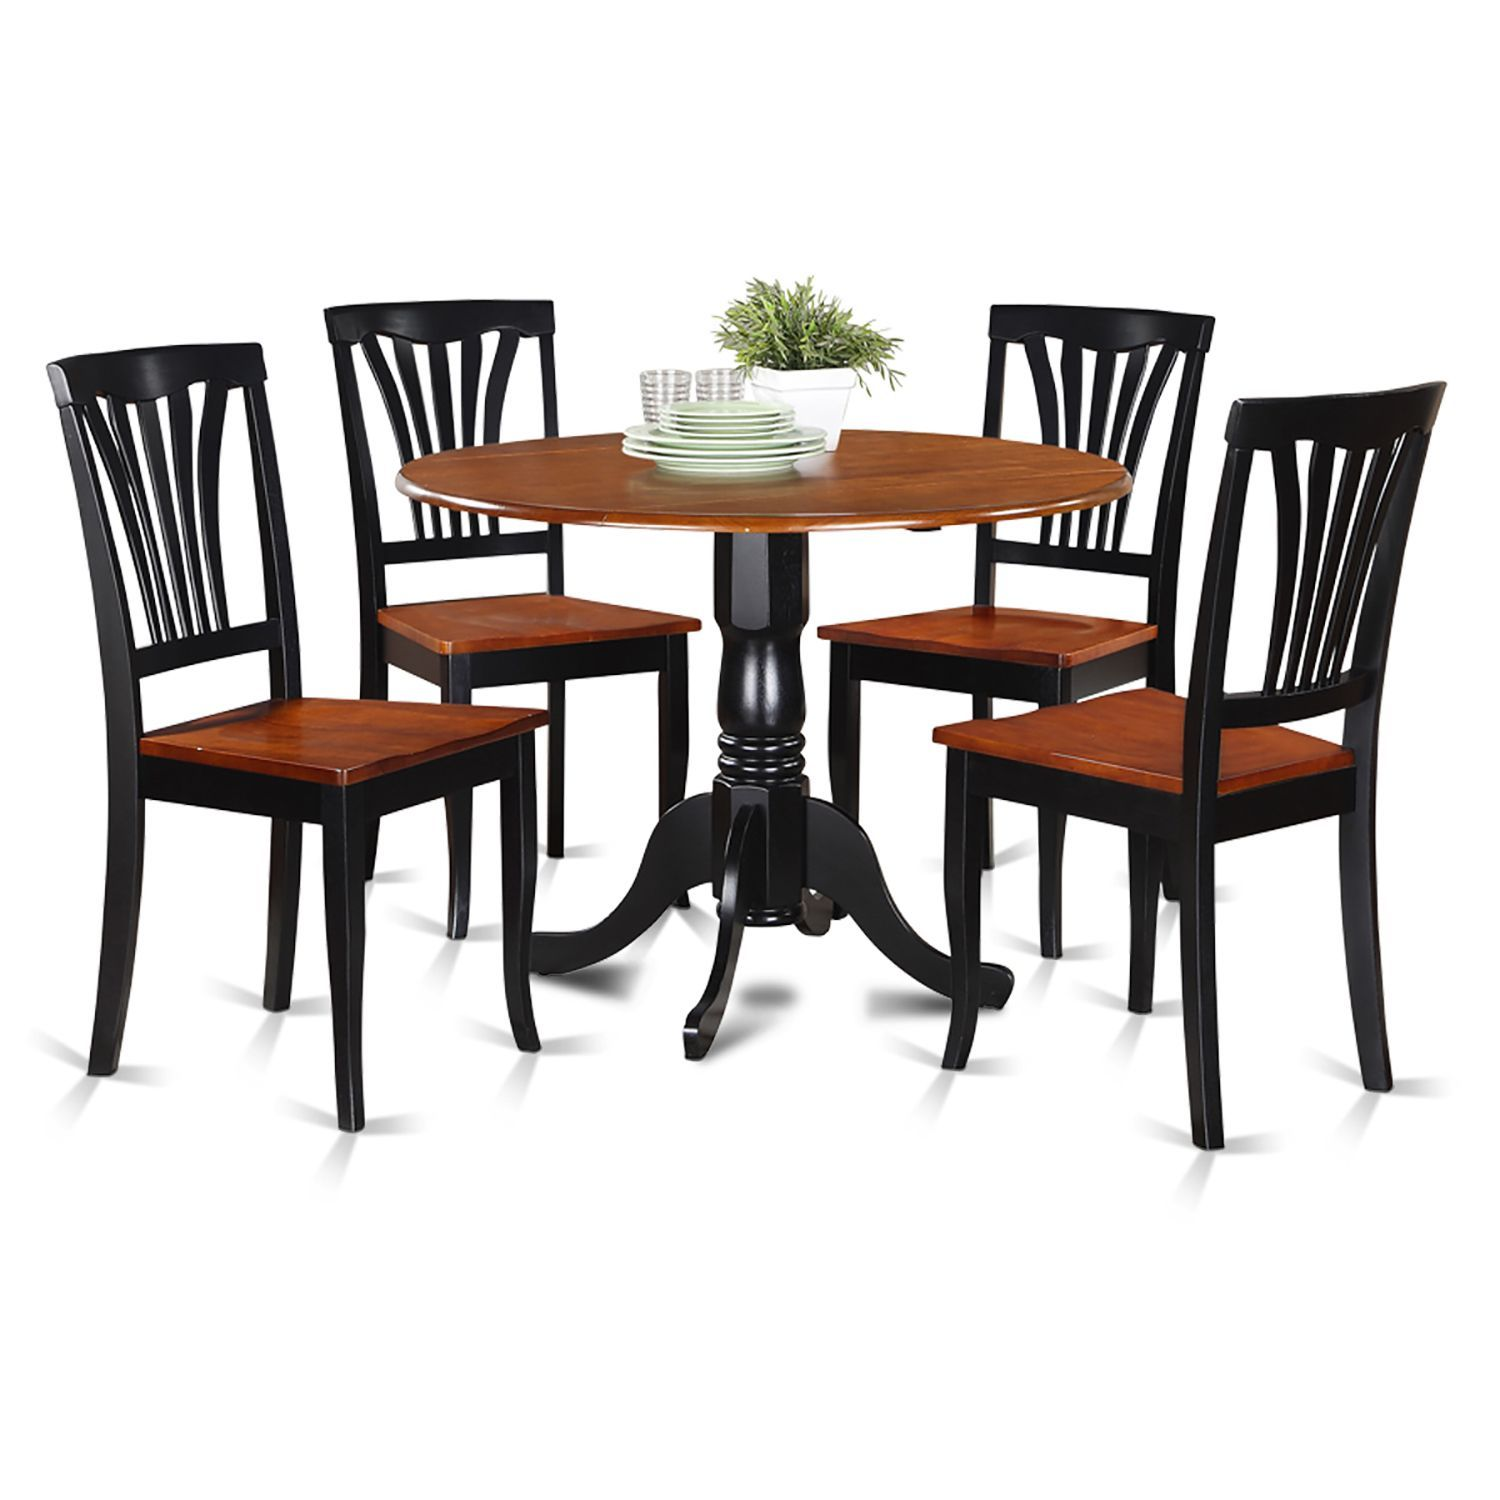 Gorgeous Drop Leaf Dinette Set Shows The Pure Attractiveness Of Asian Wood Finished In Two Colors Black And Cherry That Brings Up Sophistication